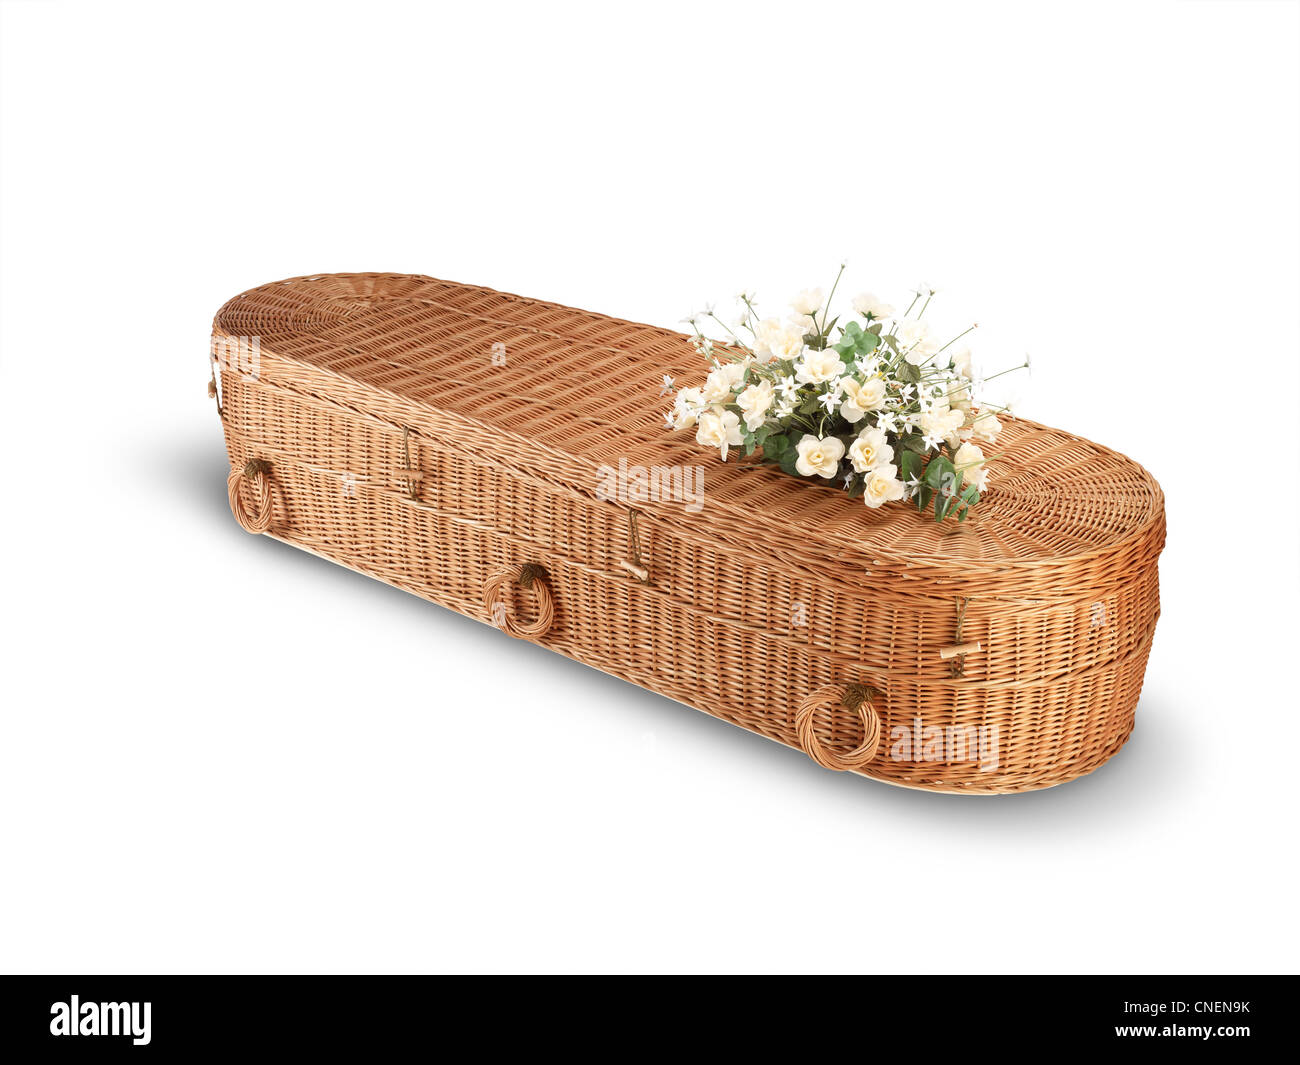 a wicker bio-degradable eco coffin isolated on white with clipping path - Stock Image